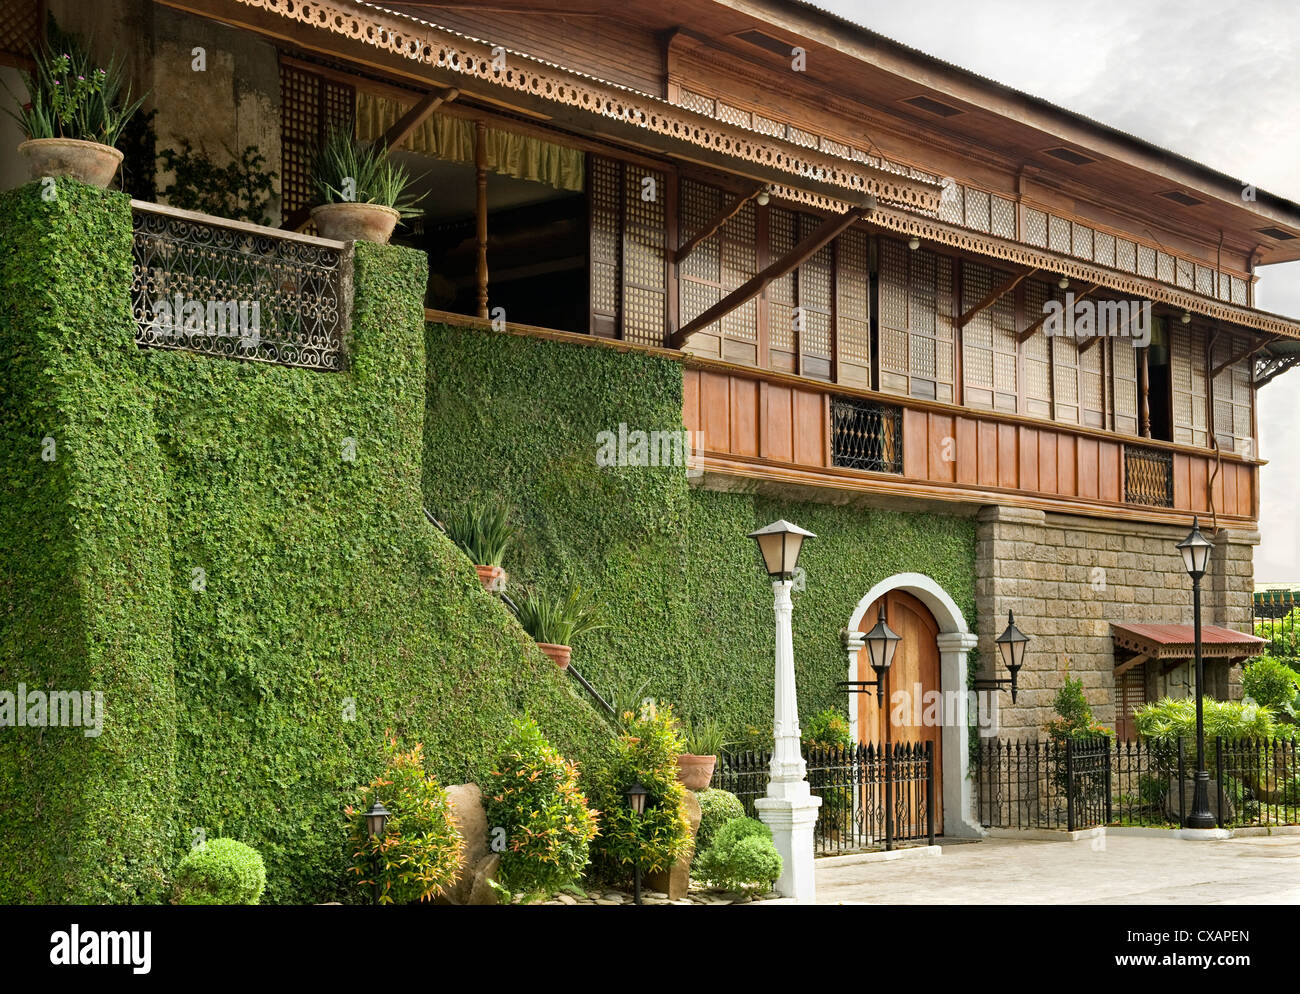 The Pastor Heritage House dating from 1883, a classic Filipino style Bahay na bato in Batangas, Philippines, Southeast Stock Photo